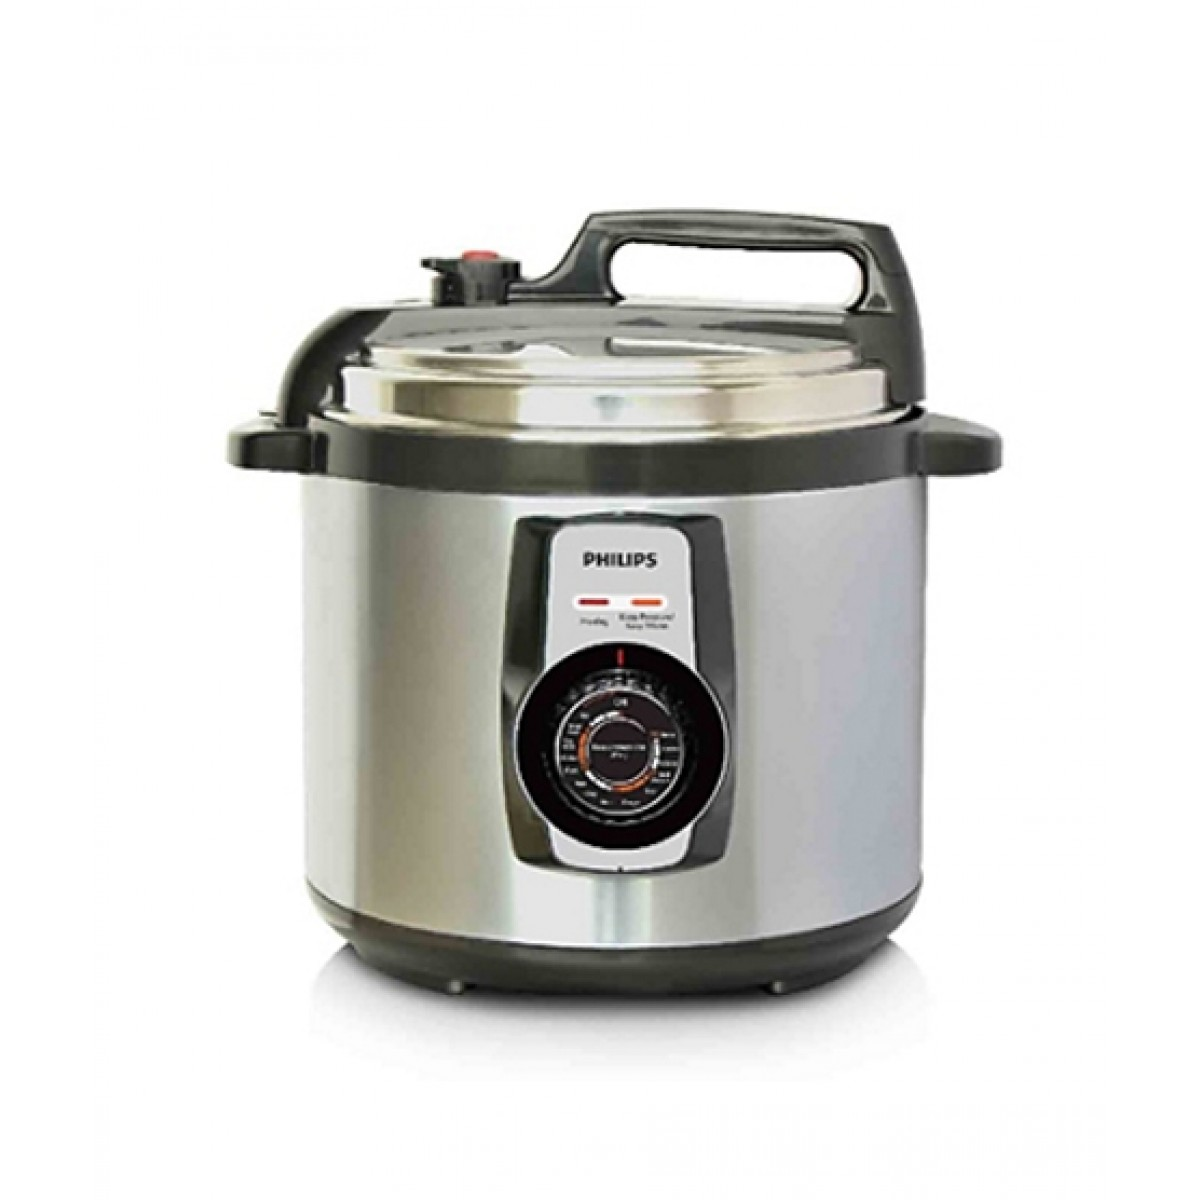 Philips Mechanical Electric Pressure Cooker (HD2103/65)